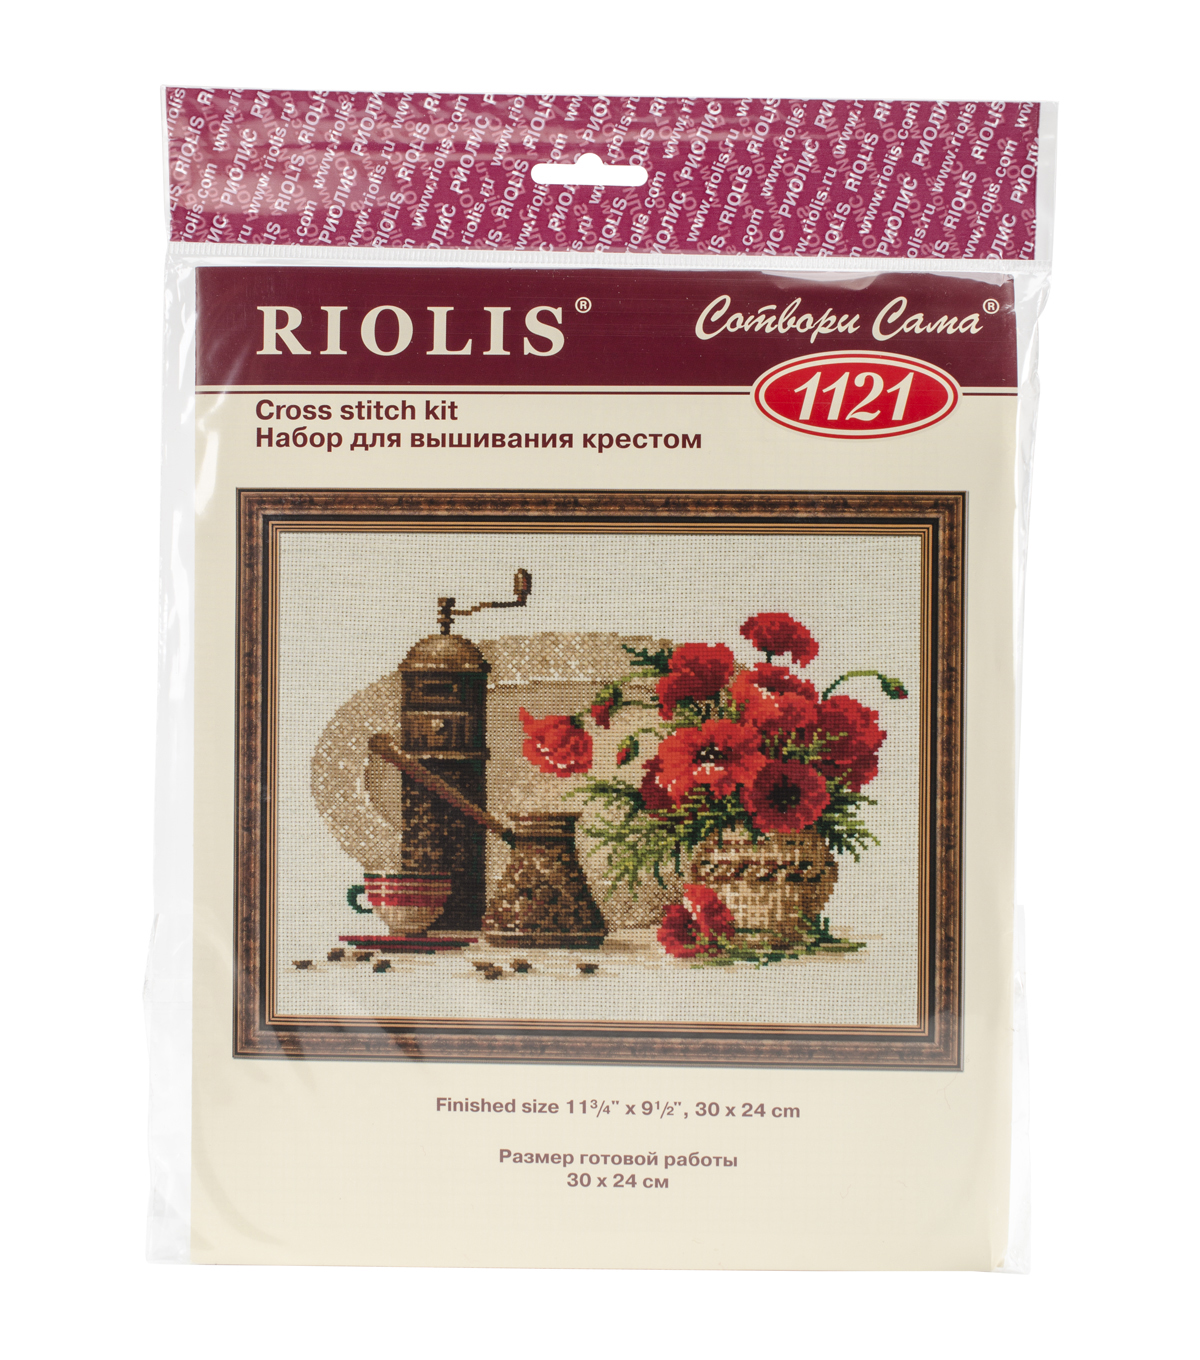 Riolis Coffee Counted Cross Stitch Kit